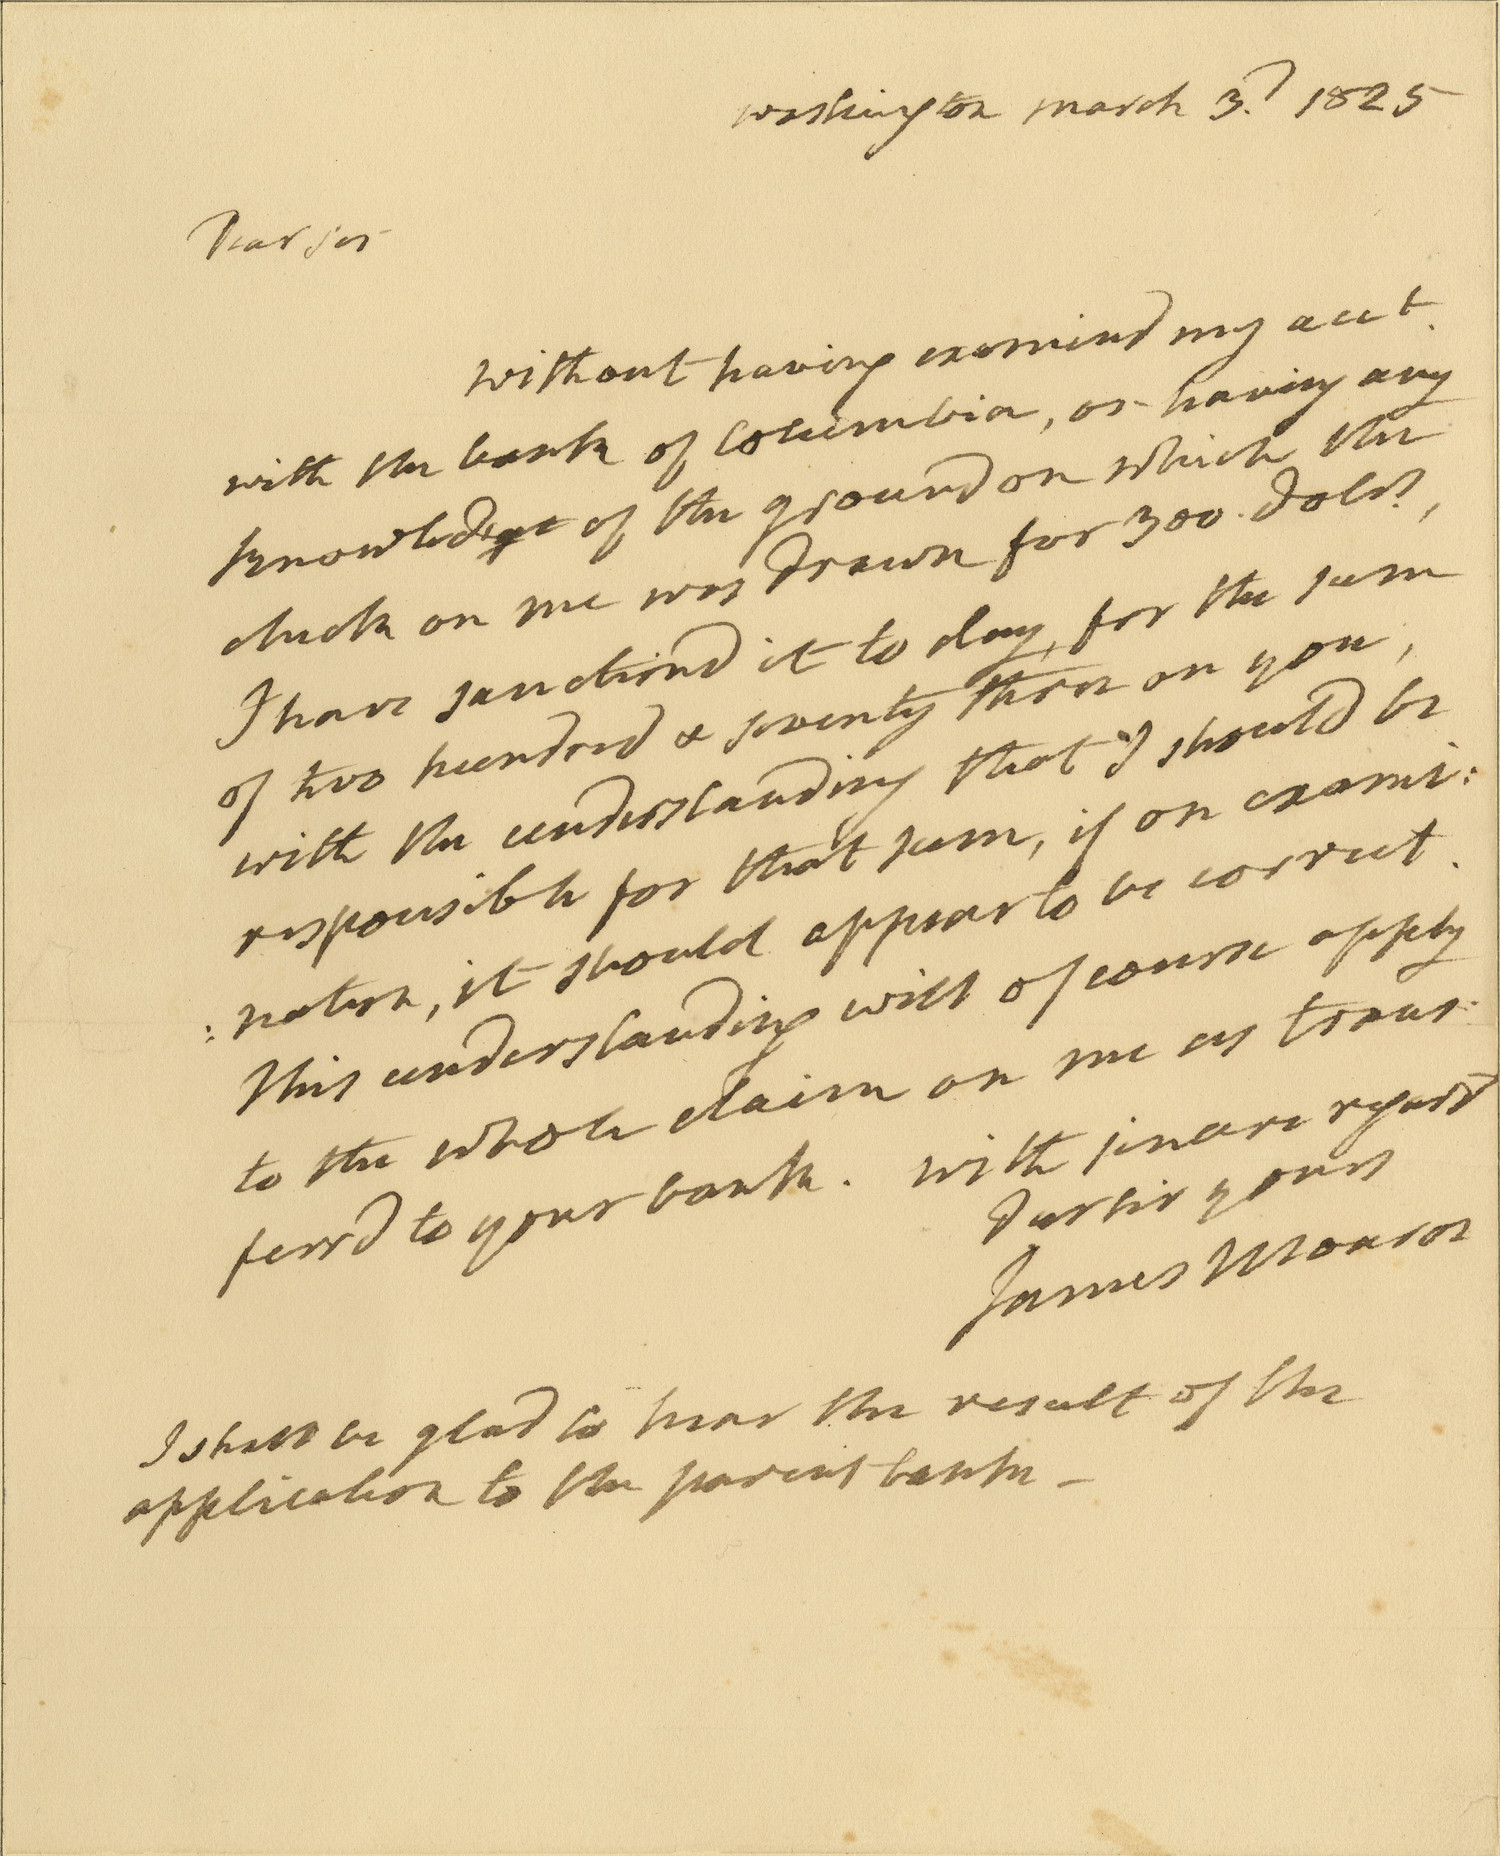 On His Last Day In Office, James Monroe Writes His Bank, Trying To Make Sense Of His Account